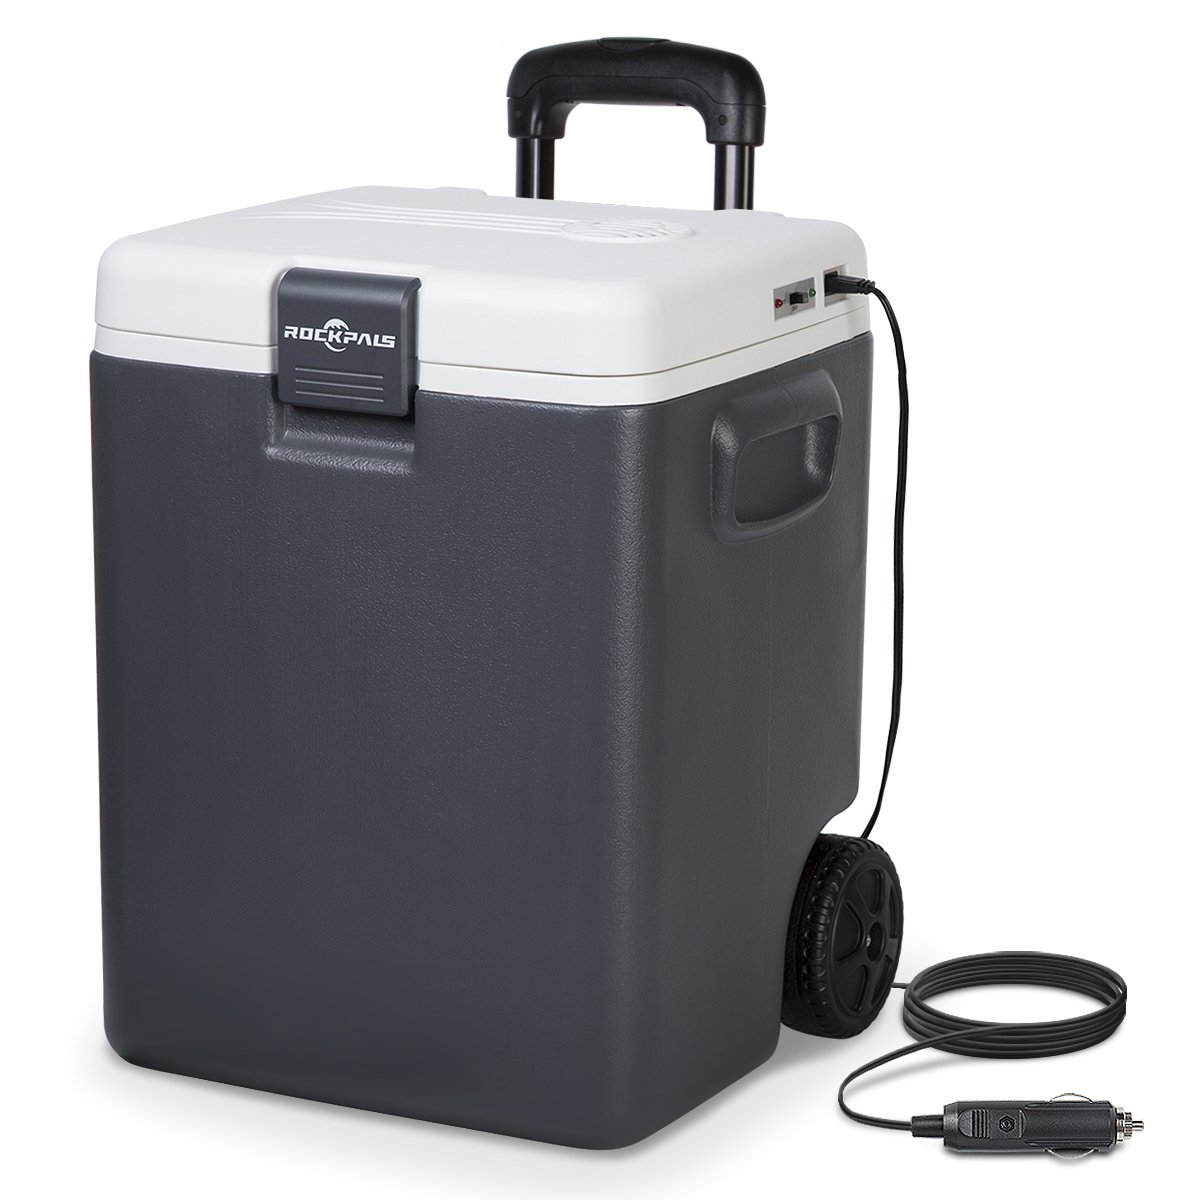 Rockpals 30 Quart Electric Cooler/Warmer On Wheels and Handle, Portable Thermoelectric Plug In Cooler Chiller with DC 12V Plug for Truck, Car, RV, Home, Office, Travel, Camping, Beach (GRAY)